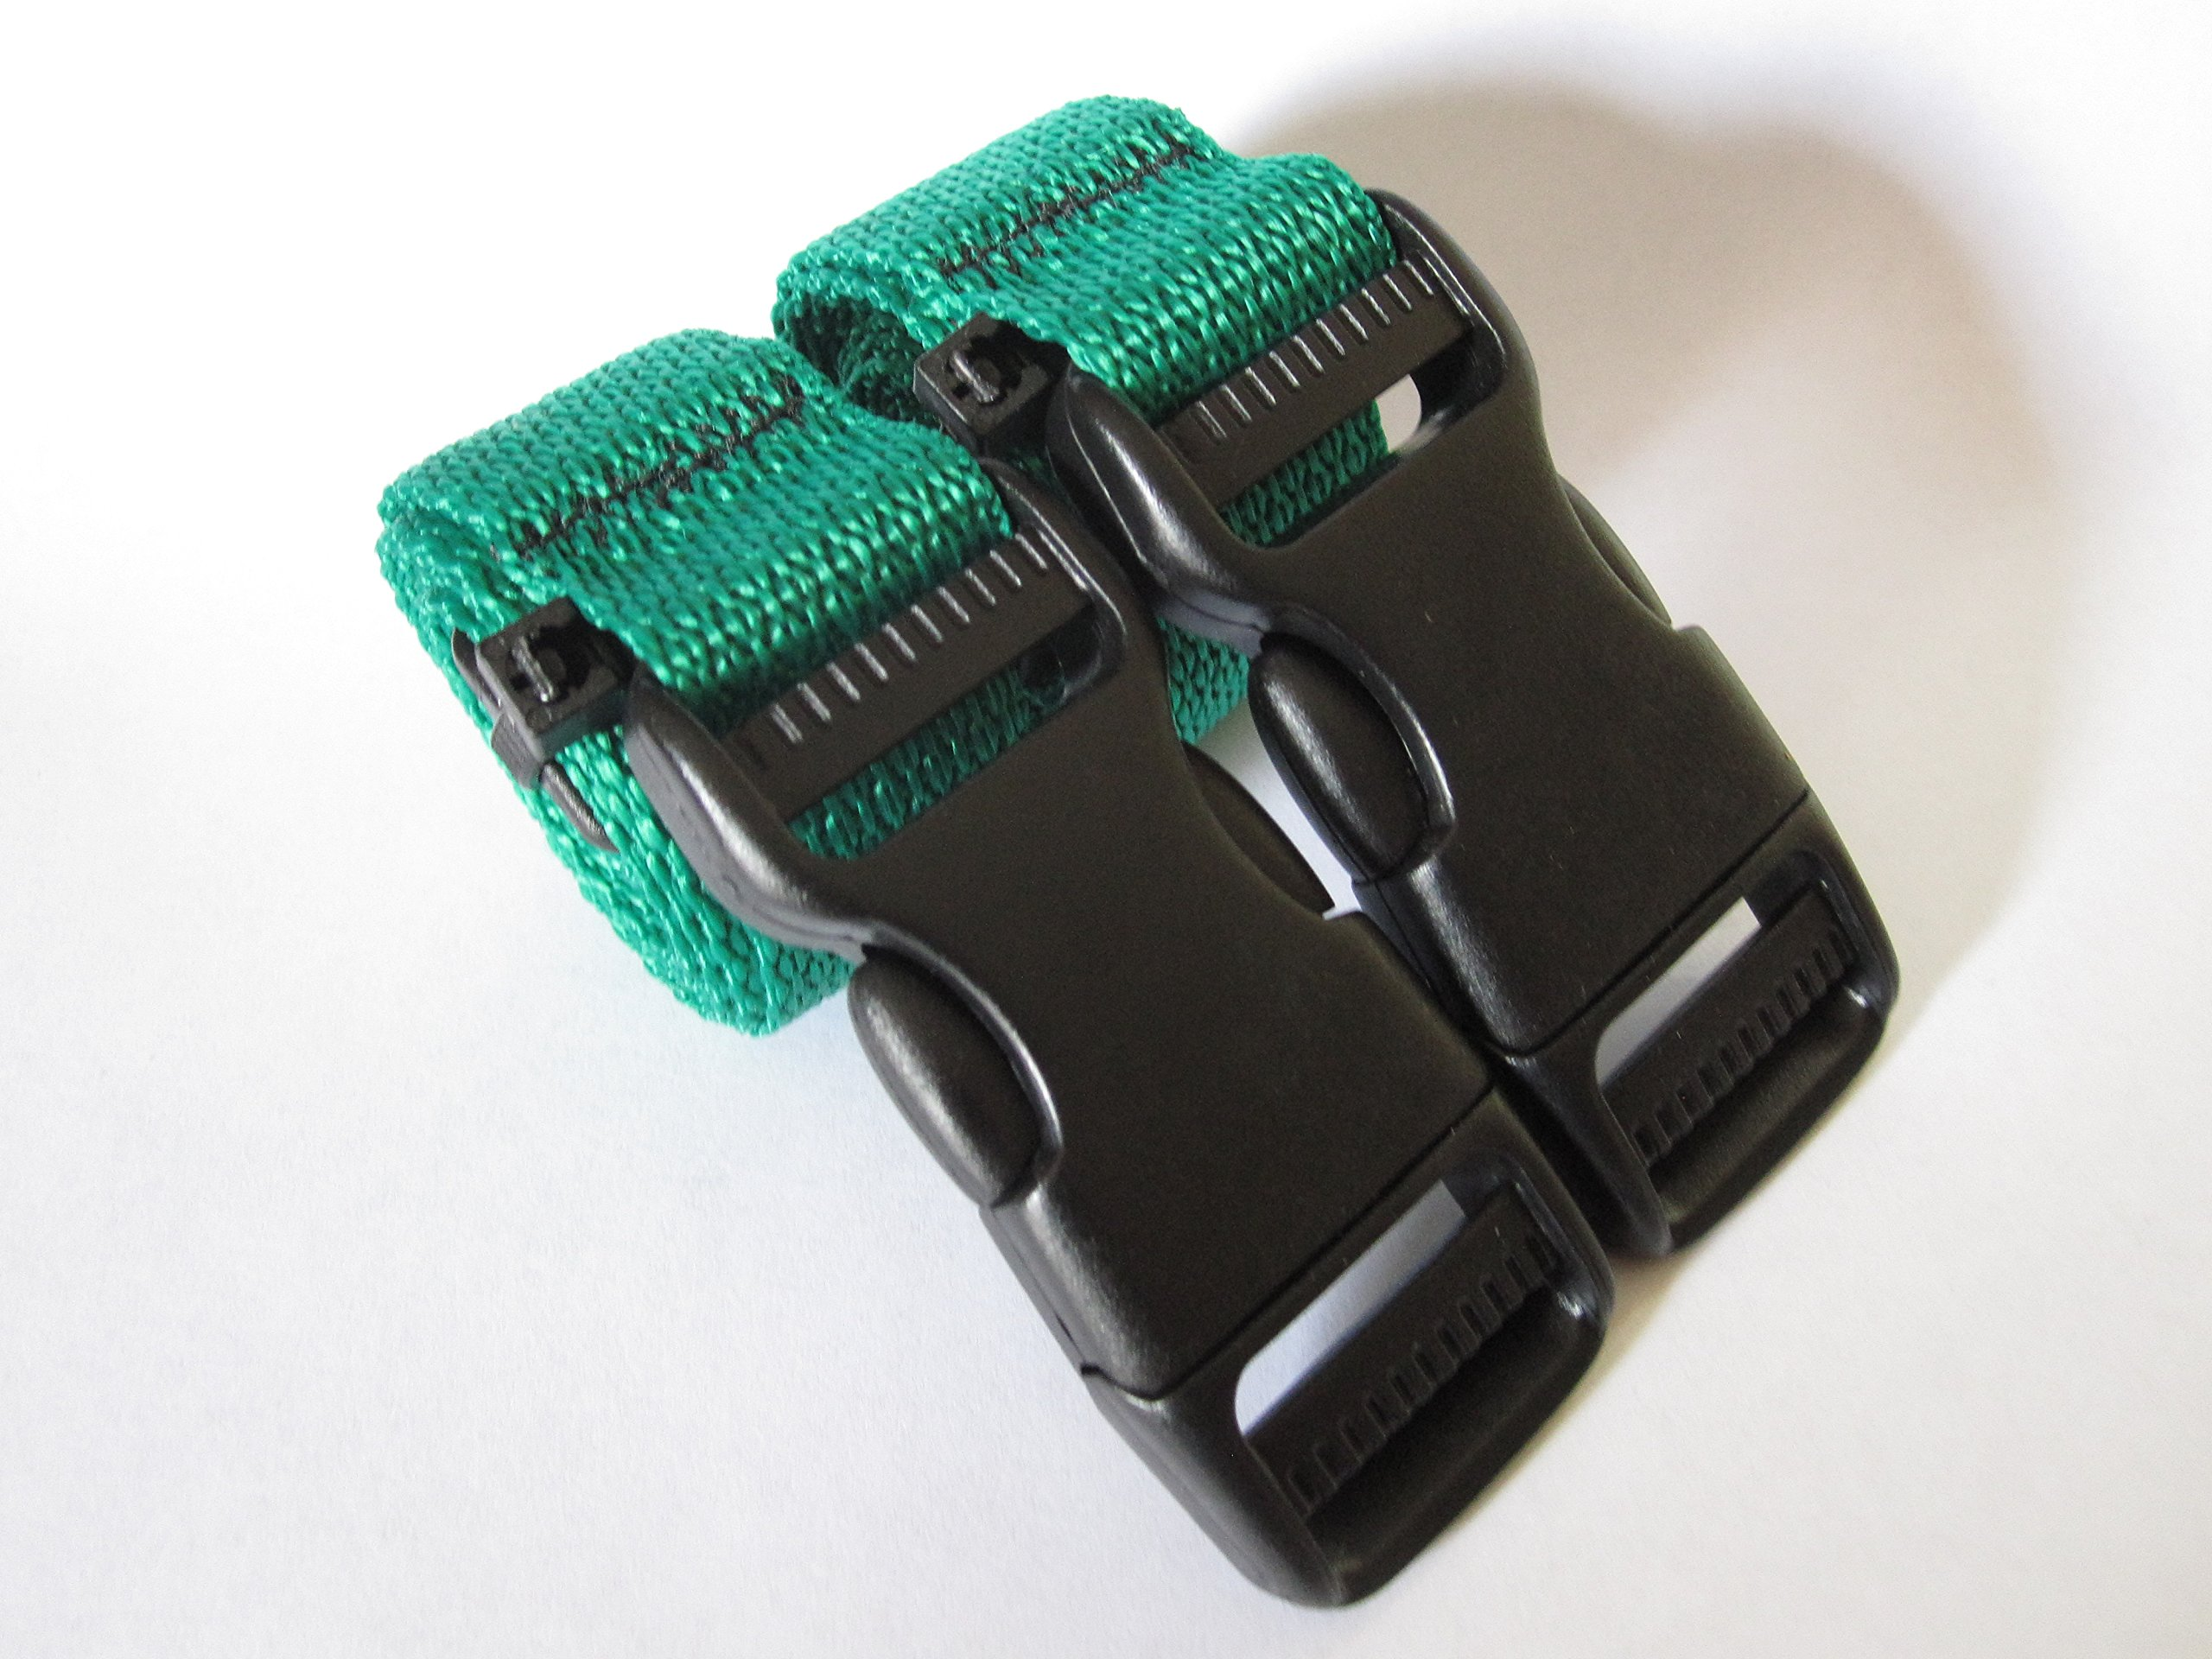 Molle Backpack Accessory Straps - Quick Release Buckle (Green)